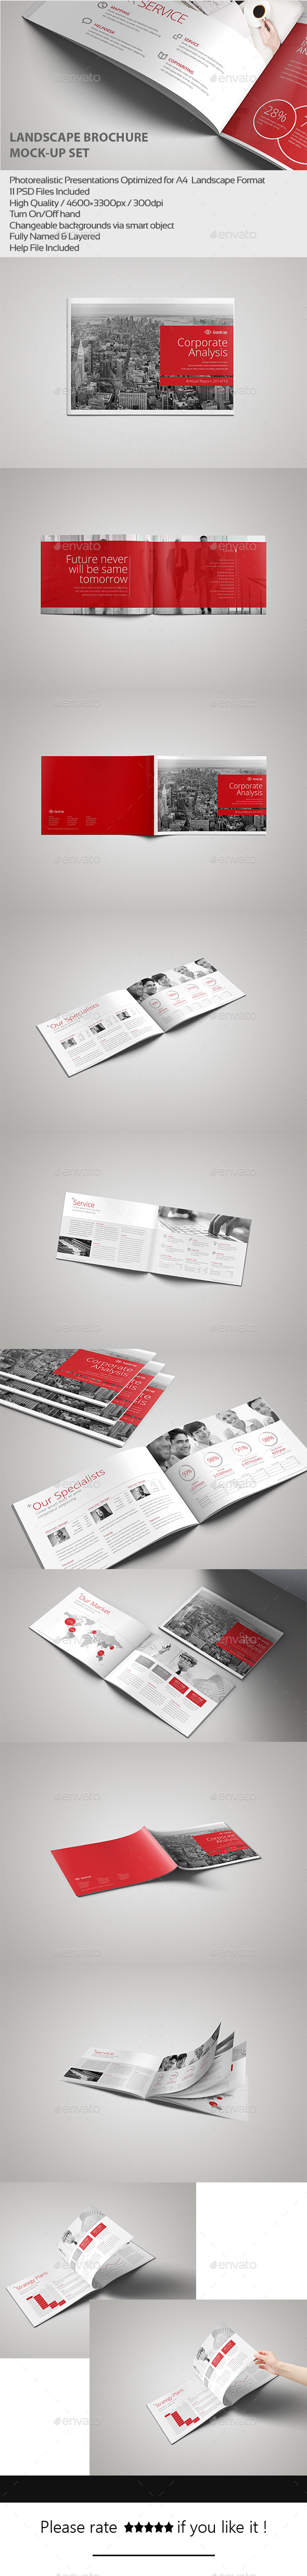 Landscape Brochure MockUp Set Design Download Http